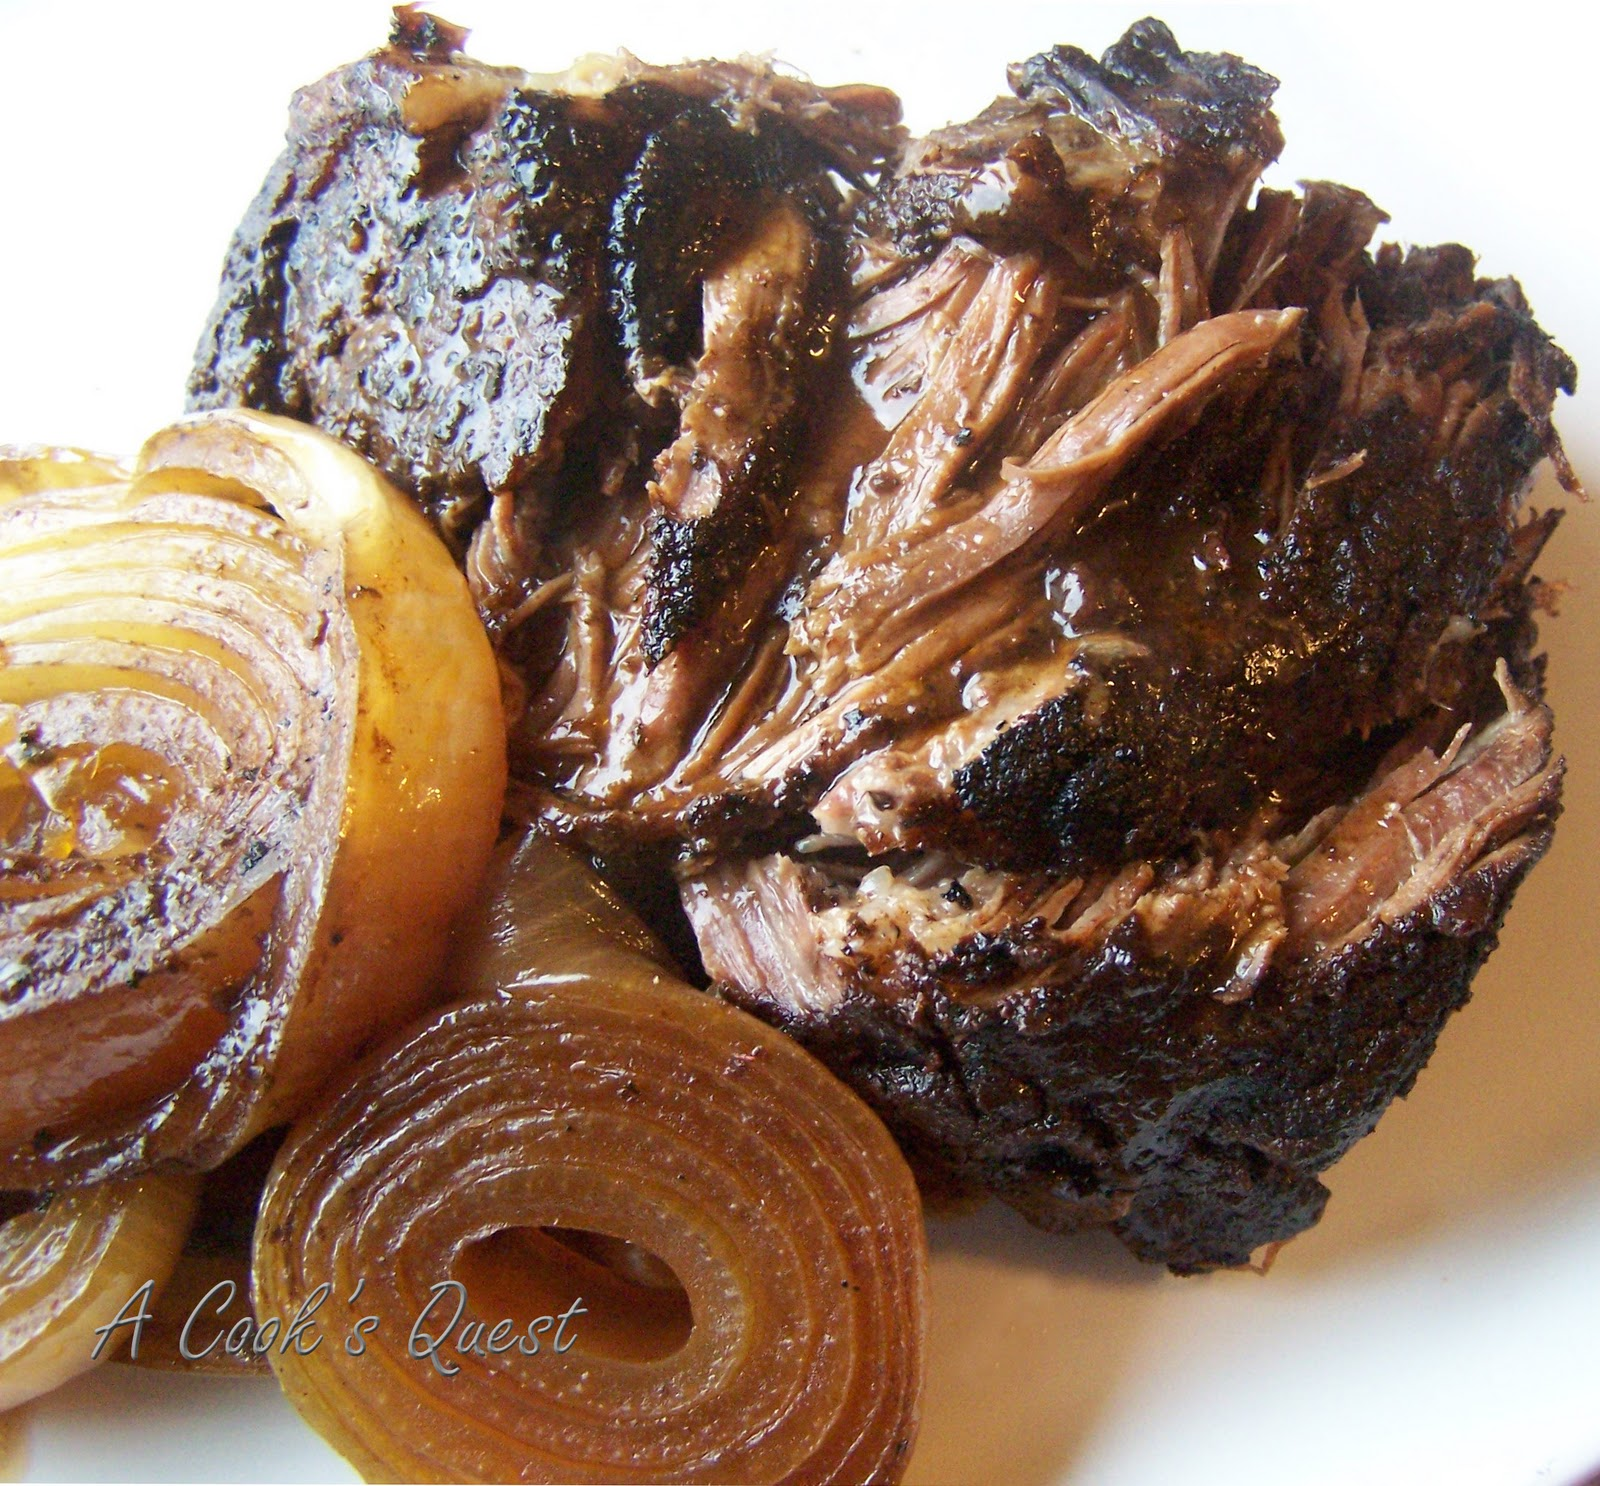 Cook's Quest: Balsamic and Onion Pot roast